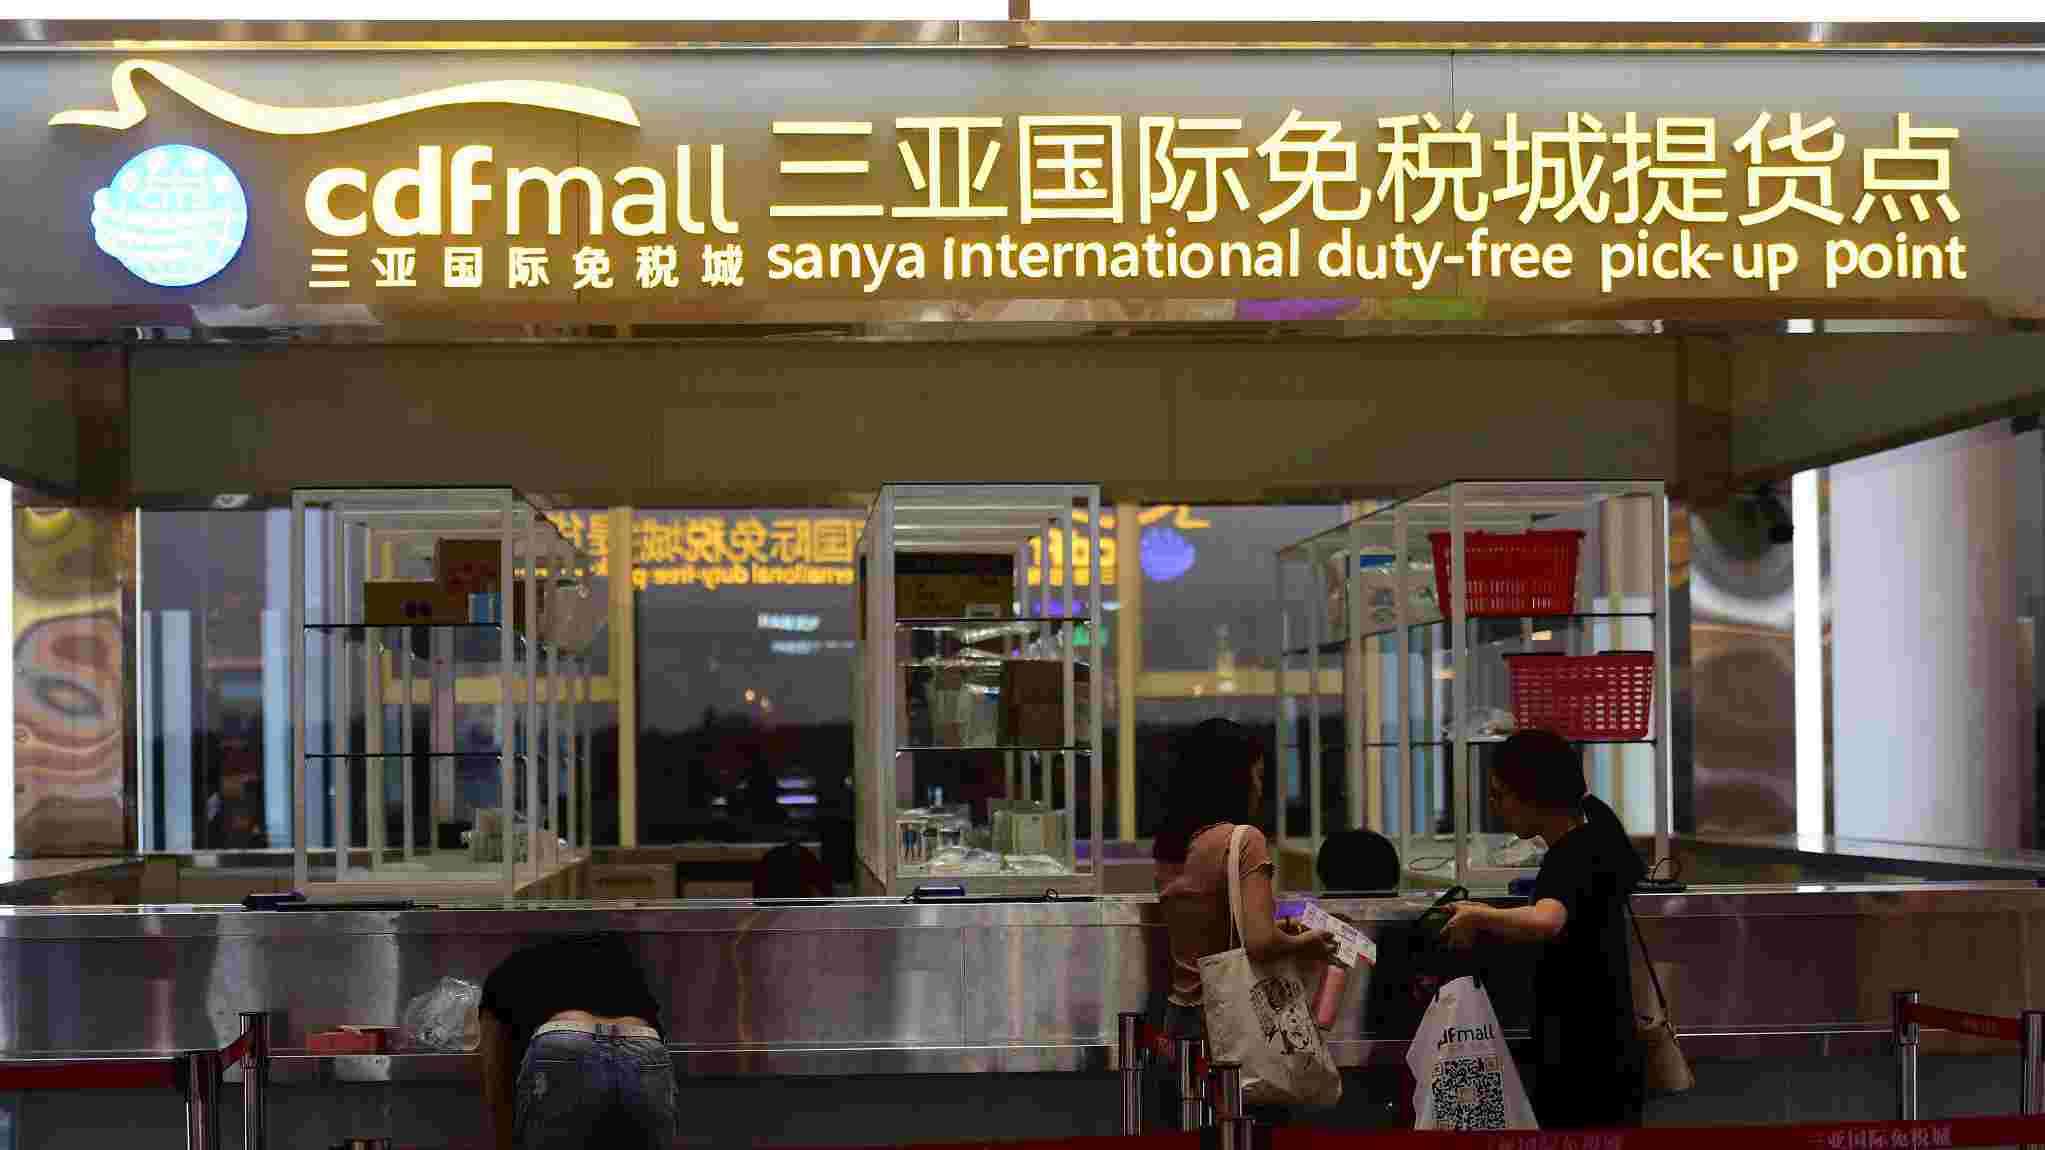 China's resort island further relaxes duty-free shopping restrictions